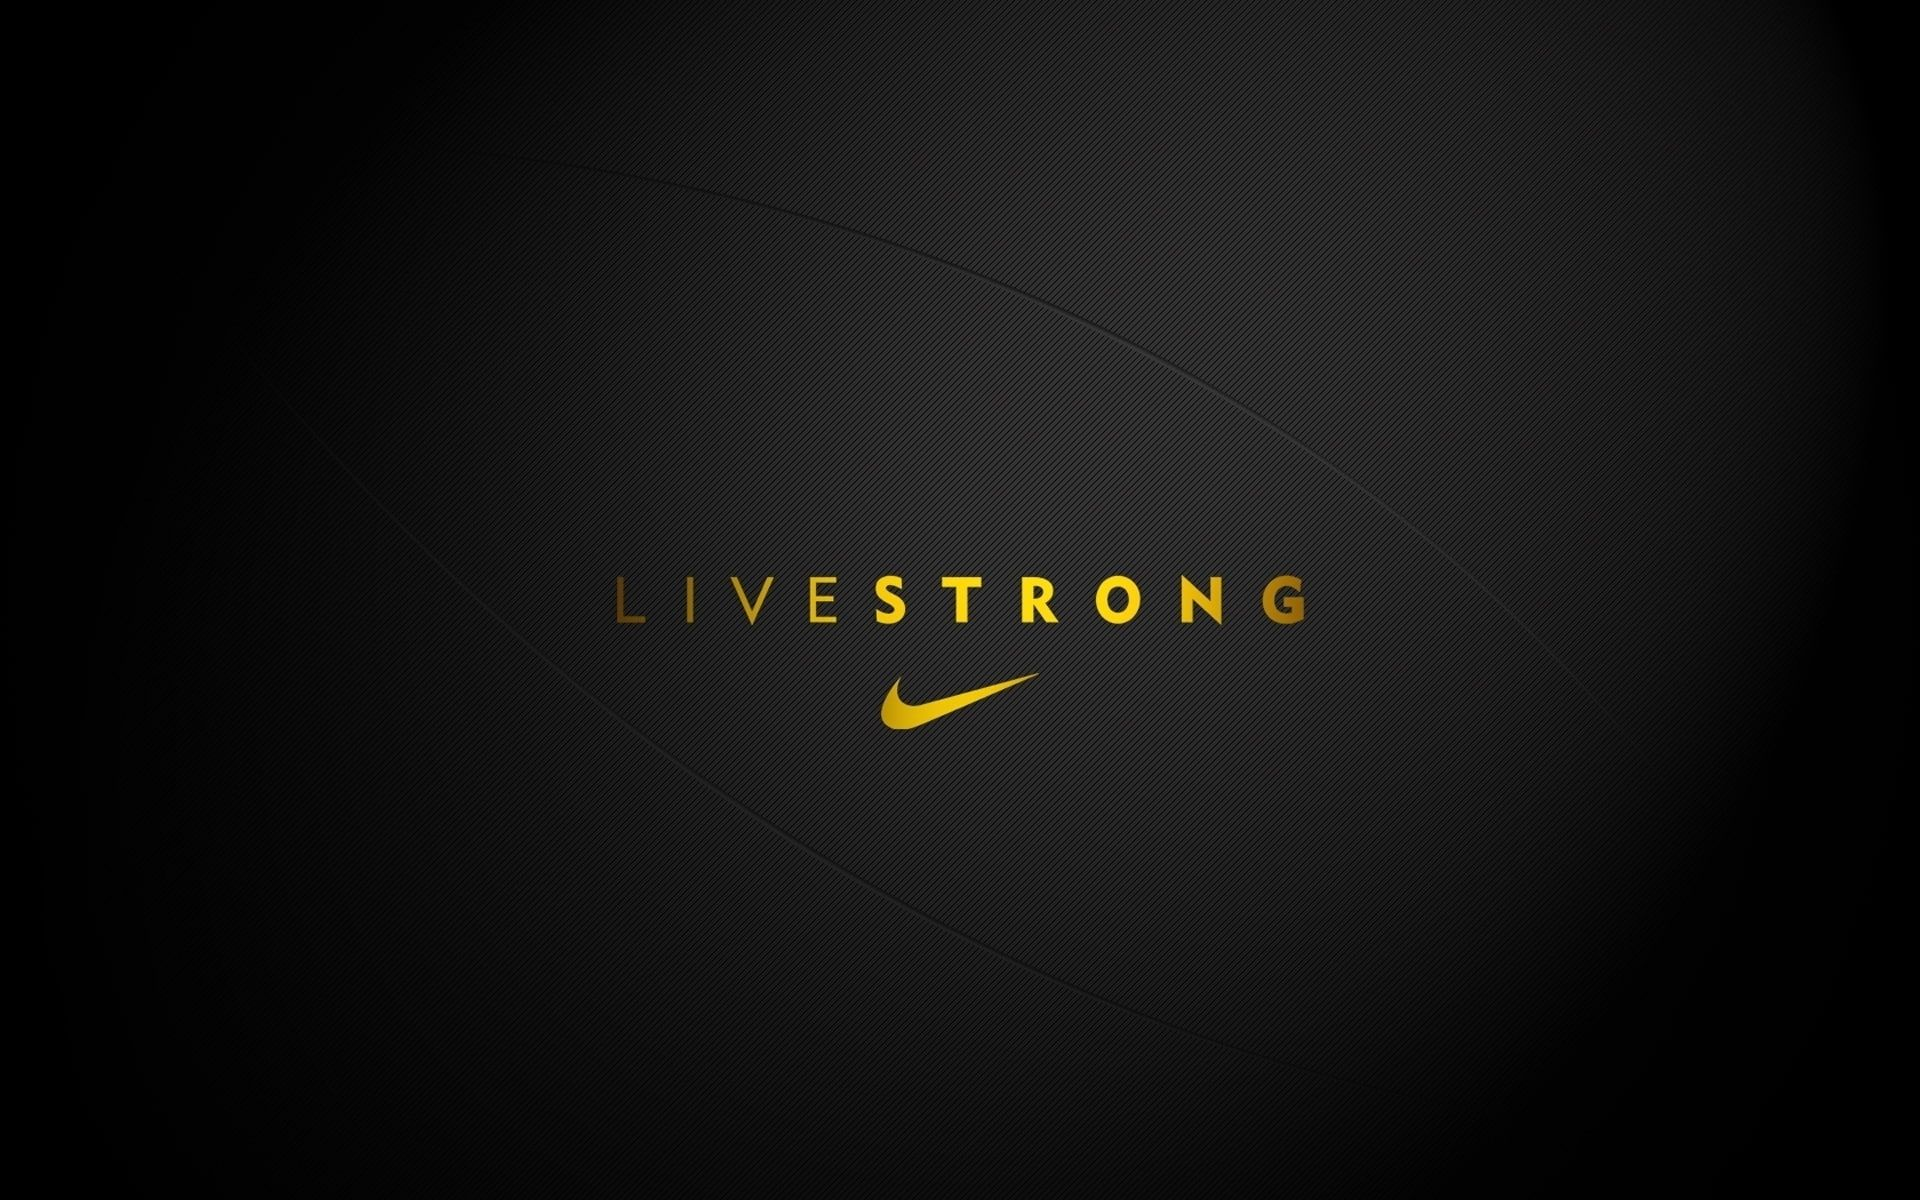 Live Strong Nike Brand Motto Logo Nike Background 1080p Wallpaper Hdwallpaper Desktop Nike Wallpaper Livestrong Black Nike Wallpaper